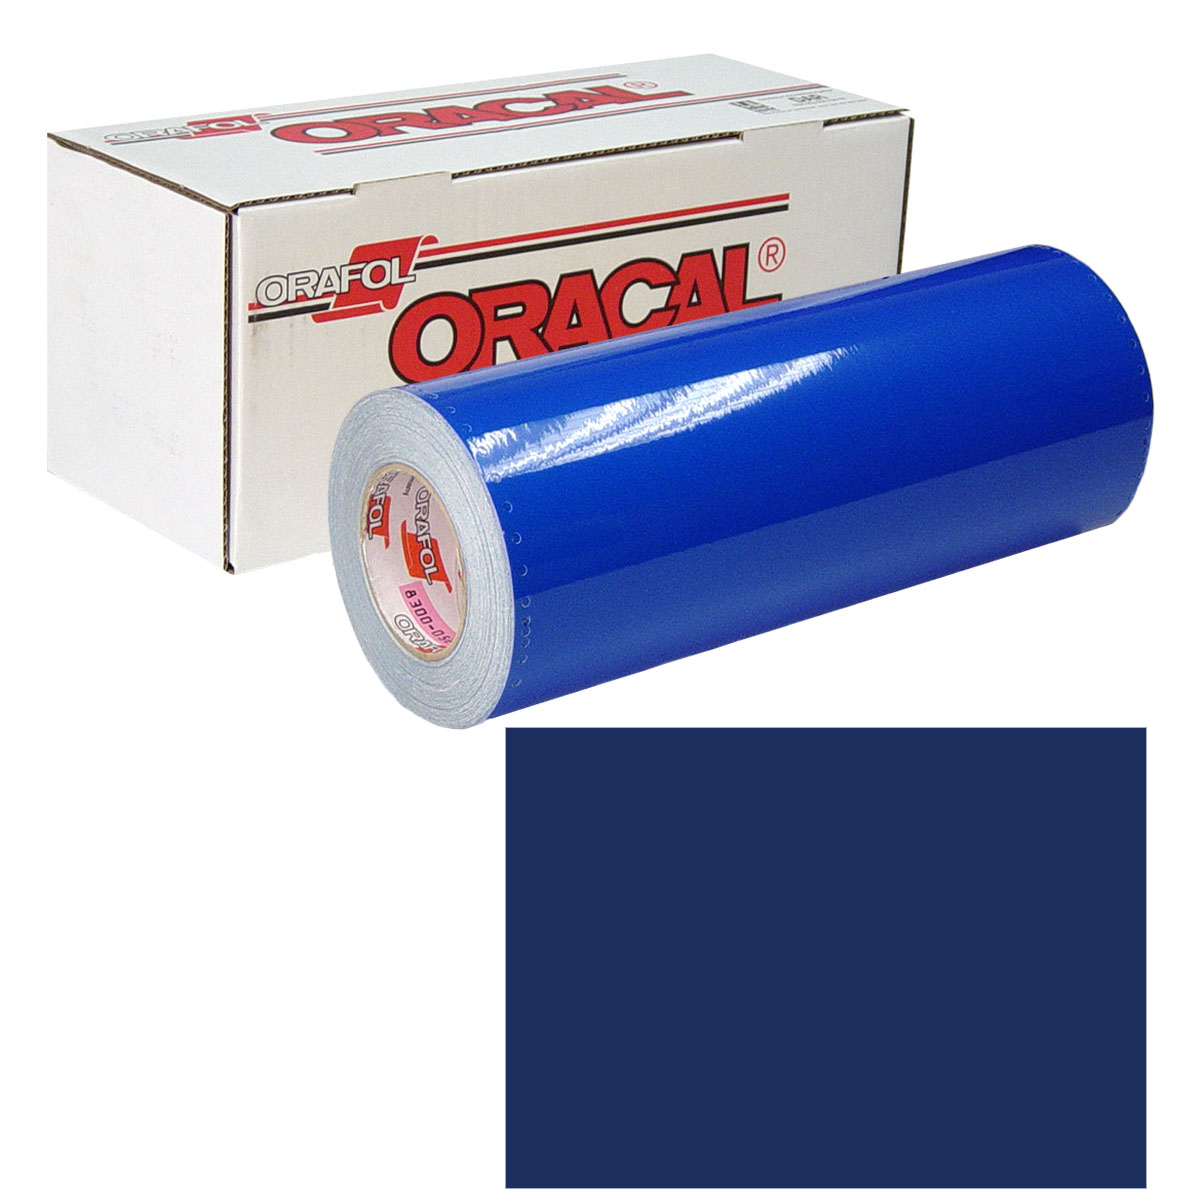 ORACAL 631 Unp 30in X 10yd 050 Dark Blue